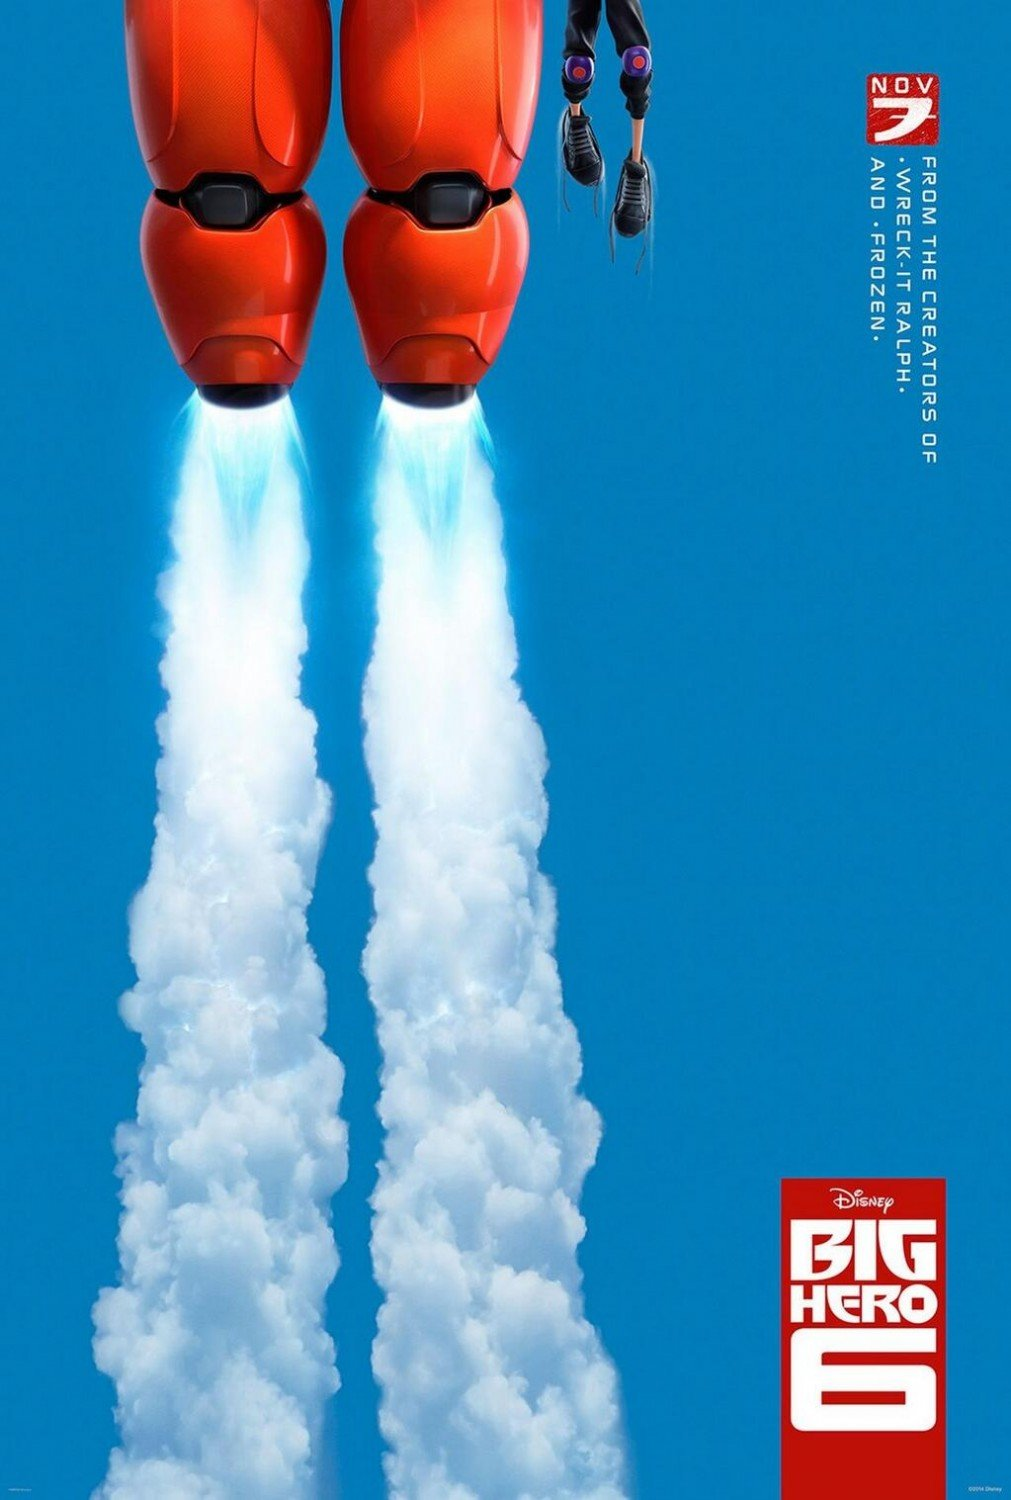 Nate hallinan big hero six xlg